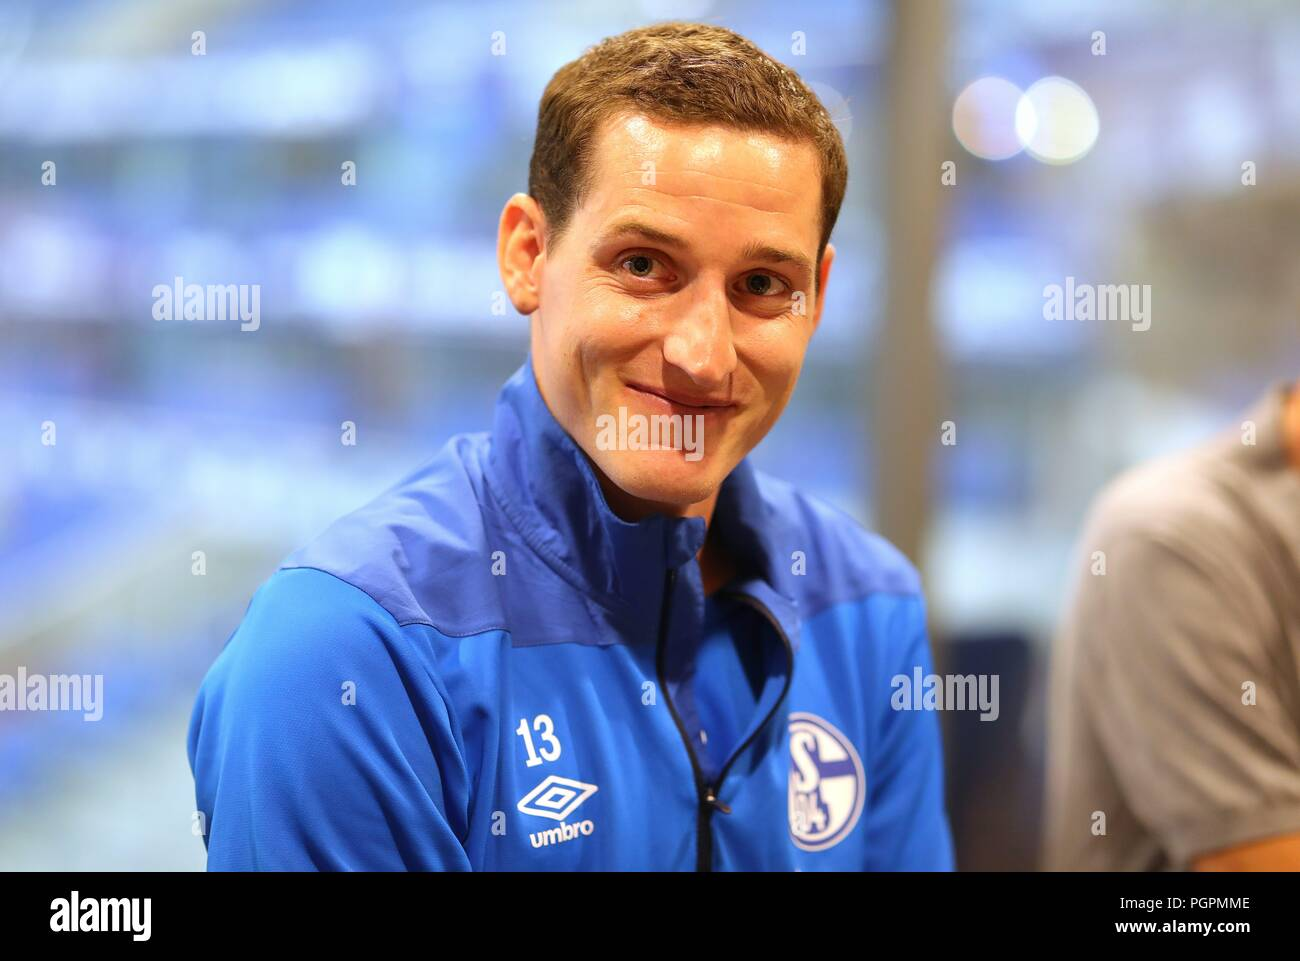 firo: 28.08.2018, Football, 1.Bundesliga, Season 2018/2019, FC Schalke 04, Training, Sebastian RUDY, Portrait | - Stock Image